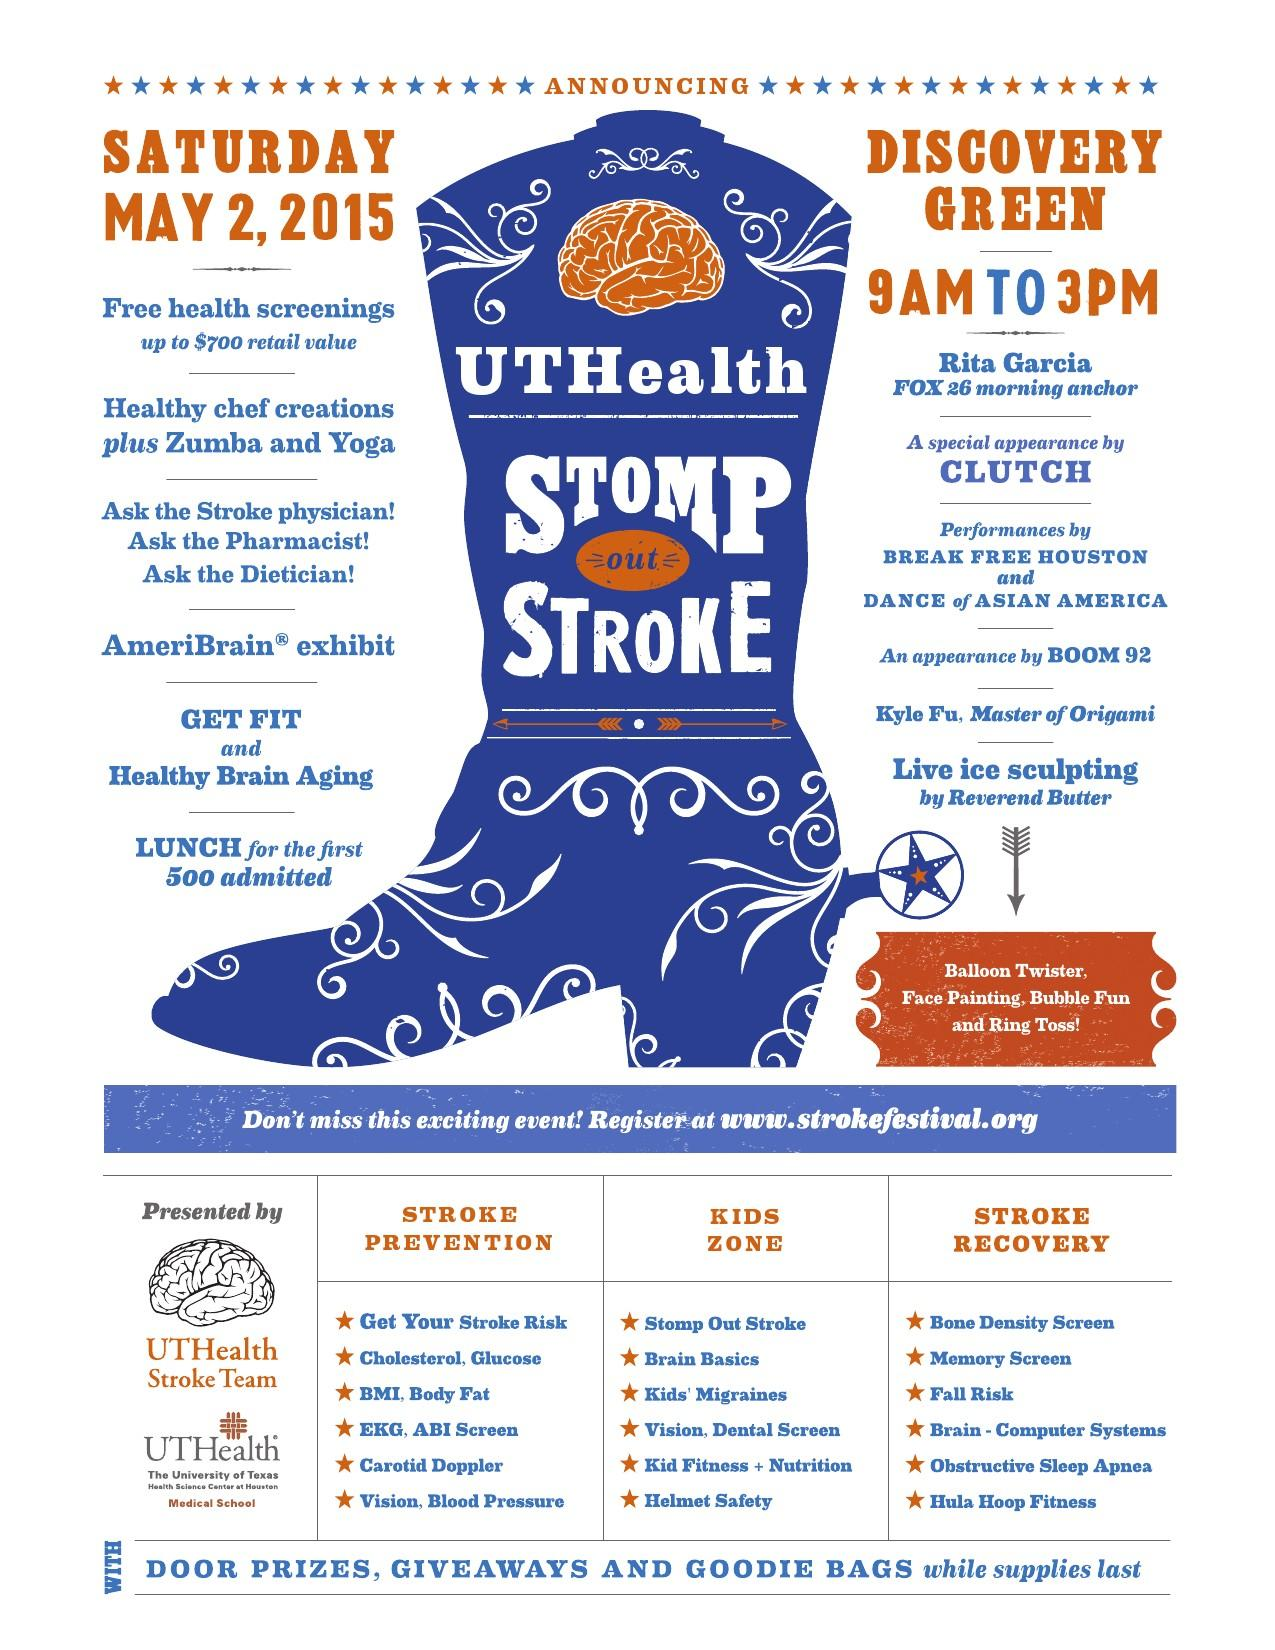 UT Health Stomp Out Stroke